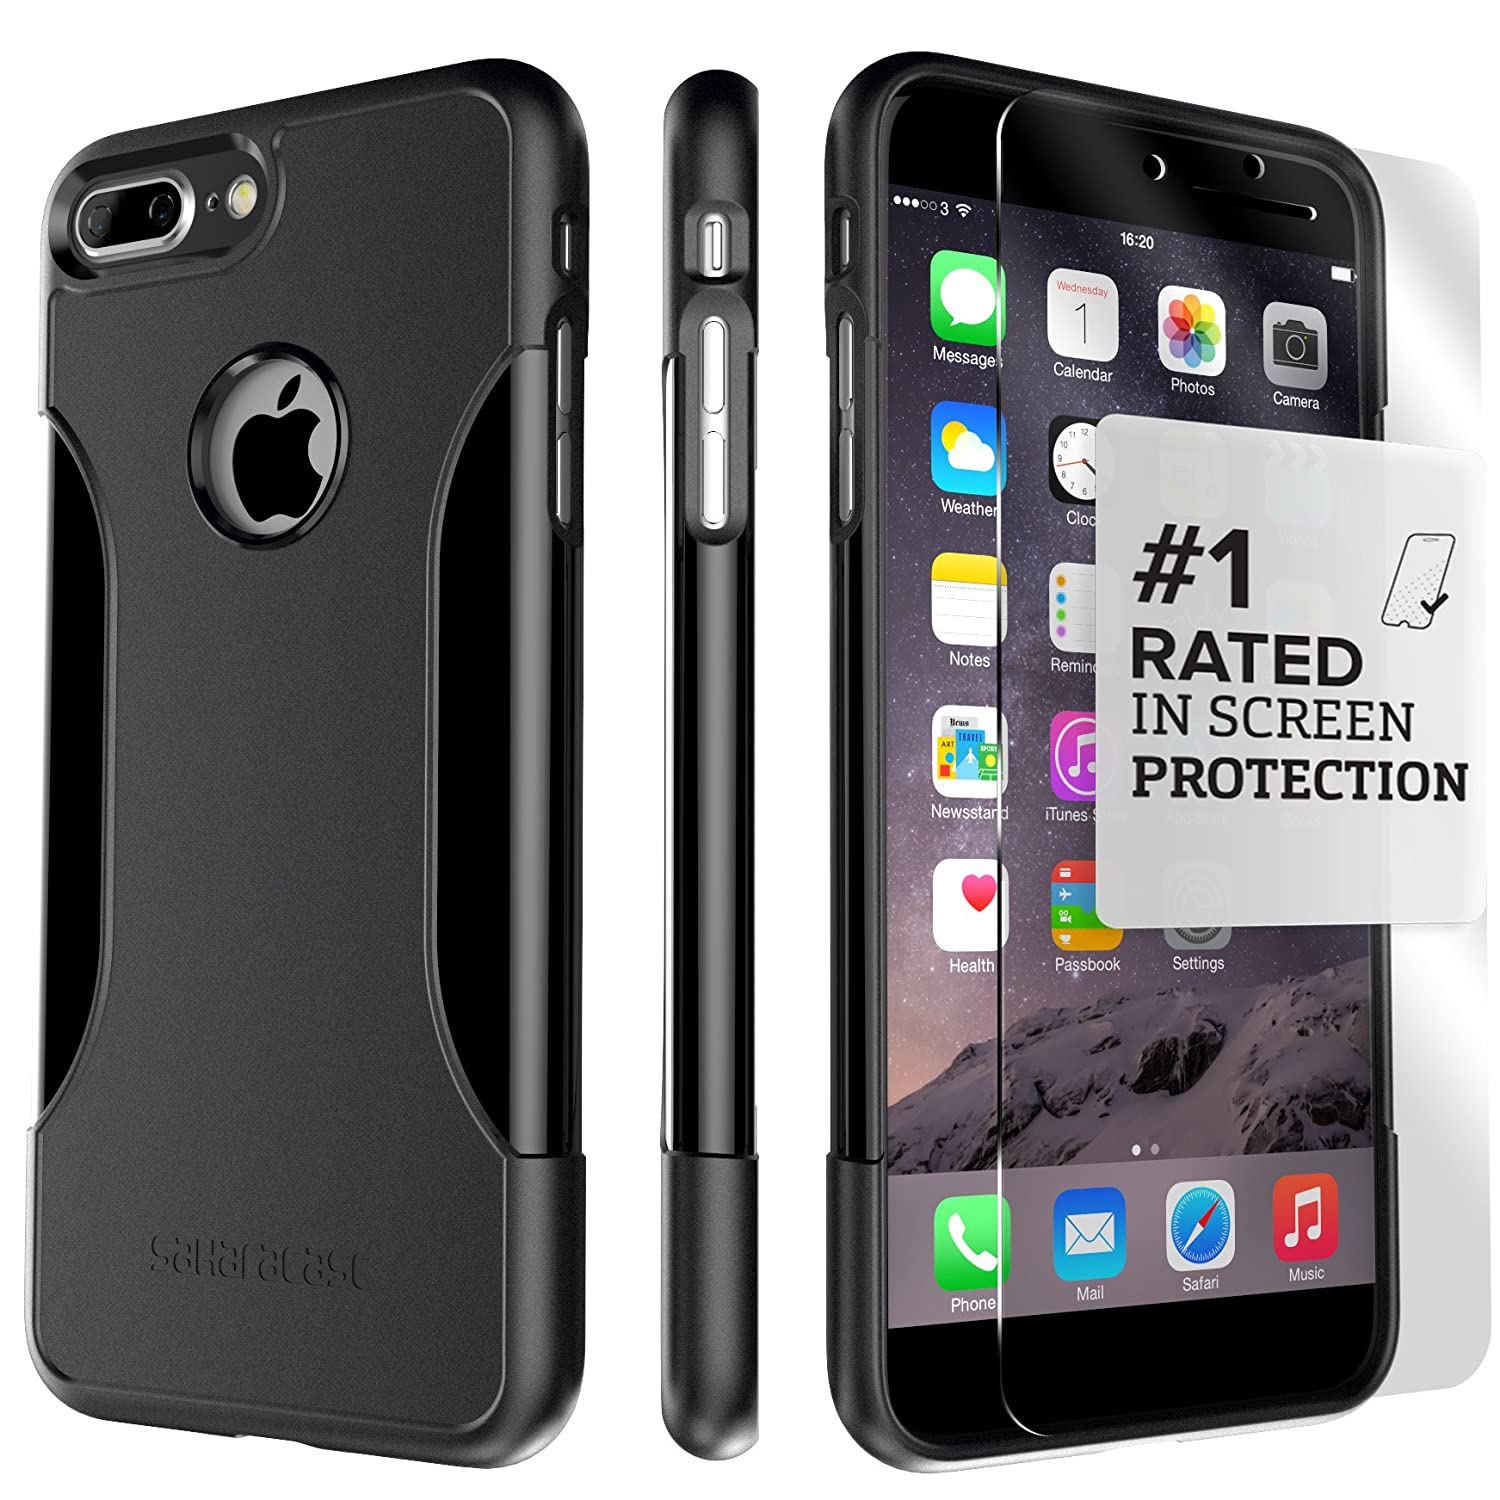 Saharacase iphone 6 6s crystal clear case rose gold edge saharacase - Amazon Com Iphone 7 Plus Case Iphone 8 Plus Case Saharacase Protective Kit Bundled With Zerodamage Tempered Glass Screen Protector Black Case For Apple